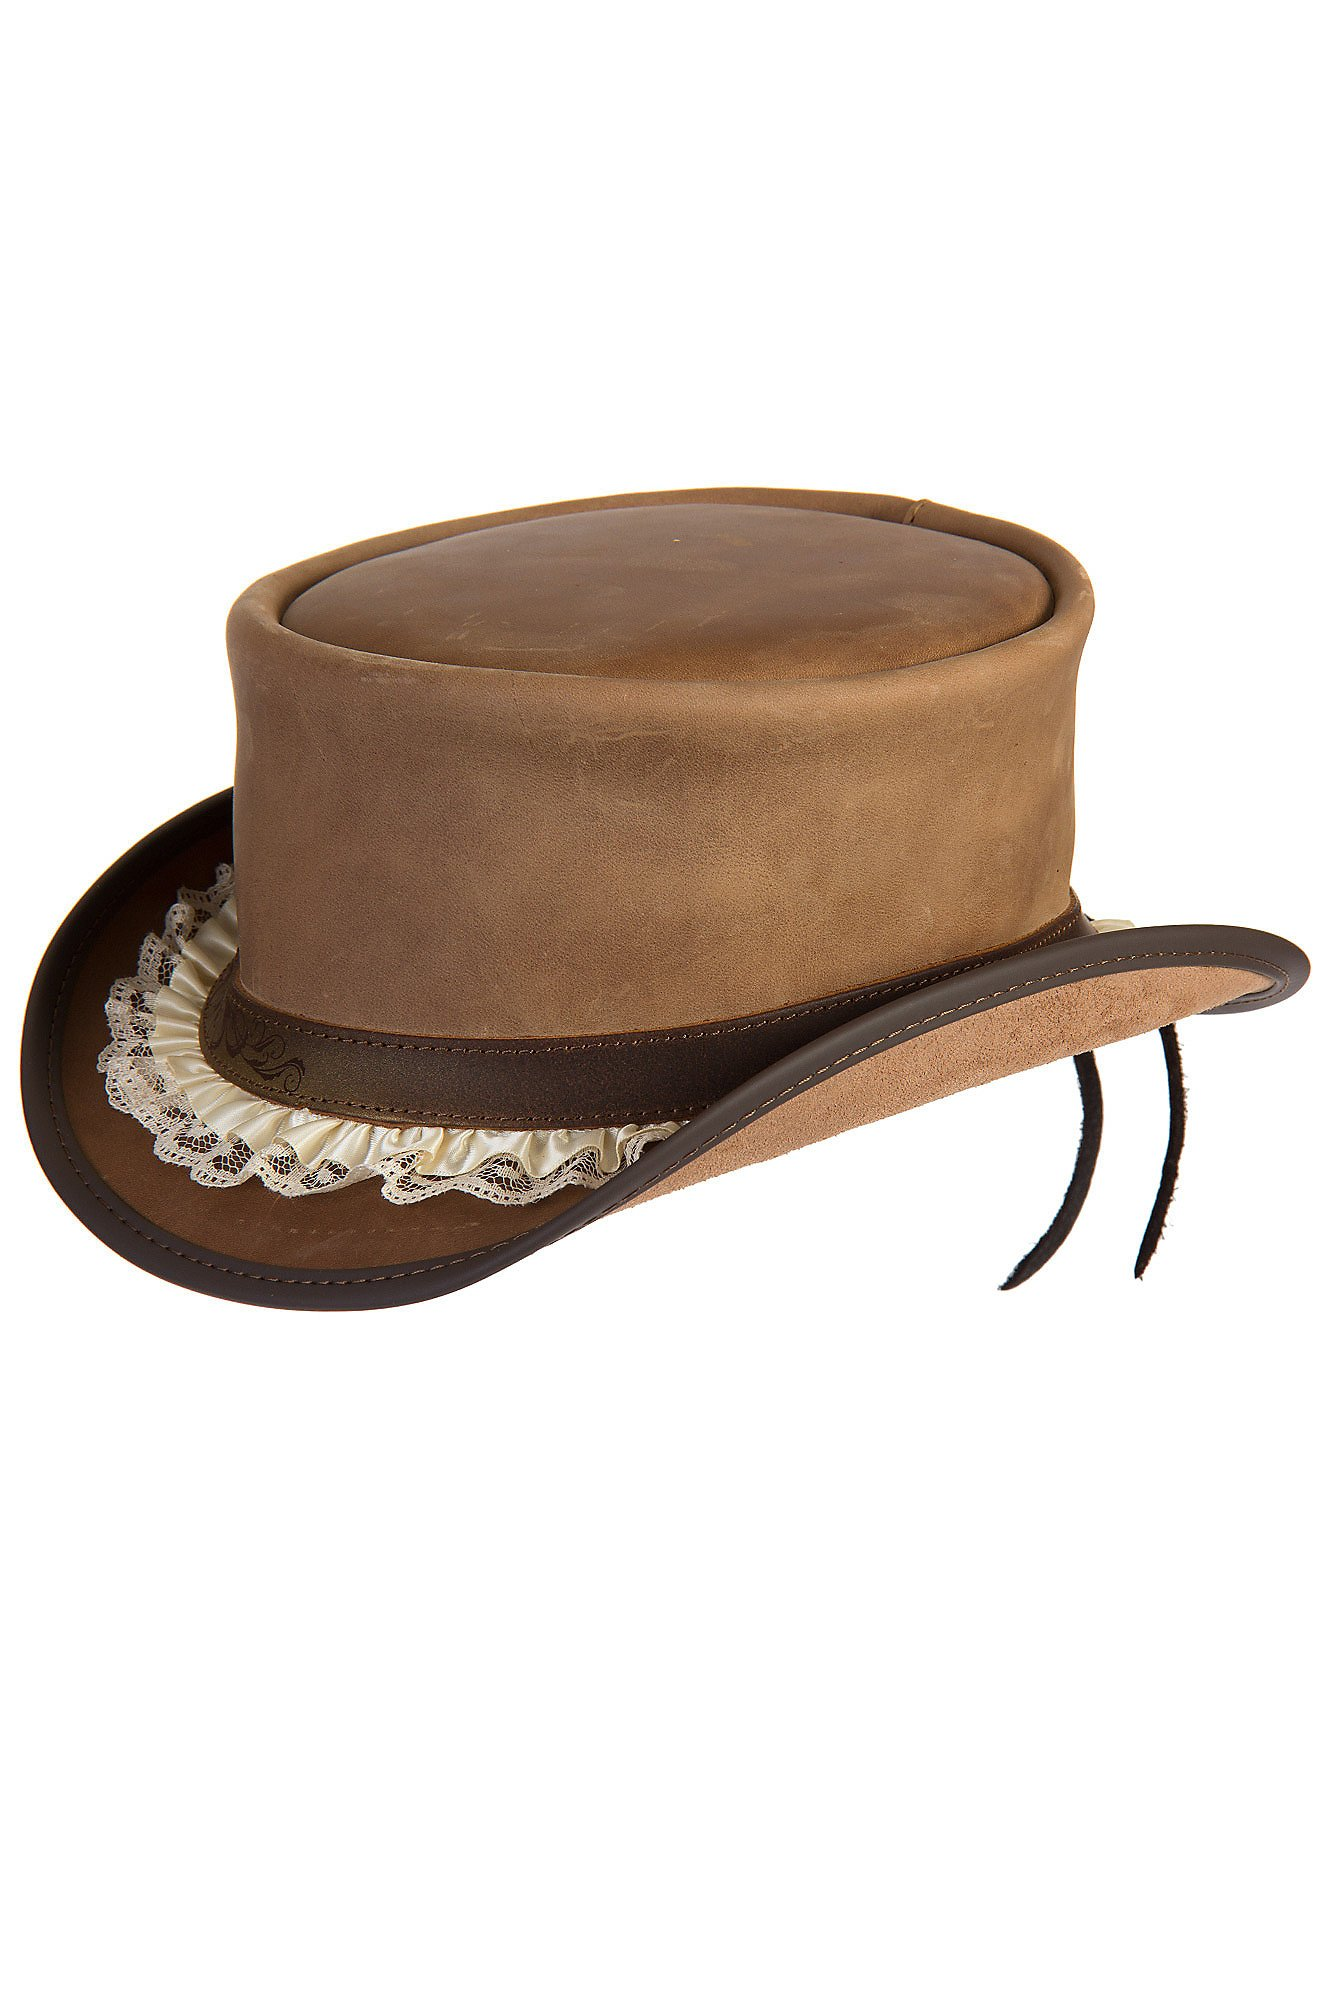 Overland Sheepskin Co. Steampunk Marlow Leather Top Hat With Garter hatband, Pecan, Size Large (7 3/8)